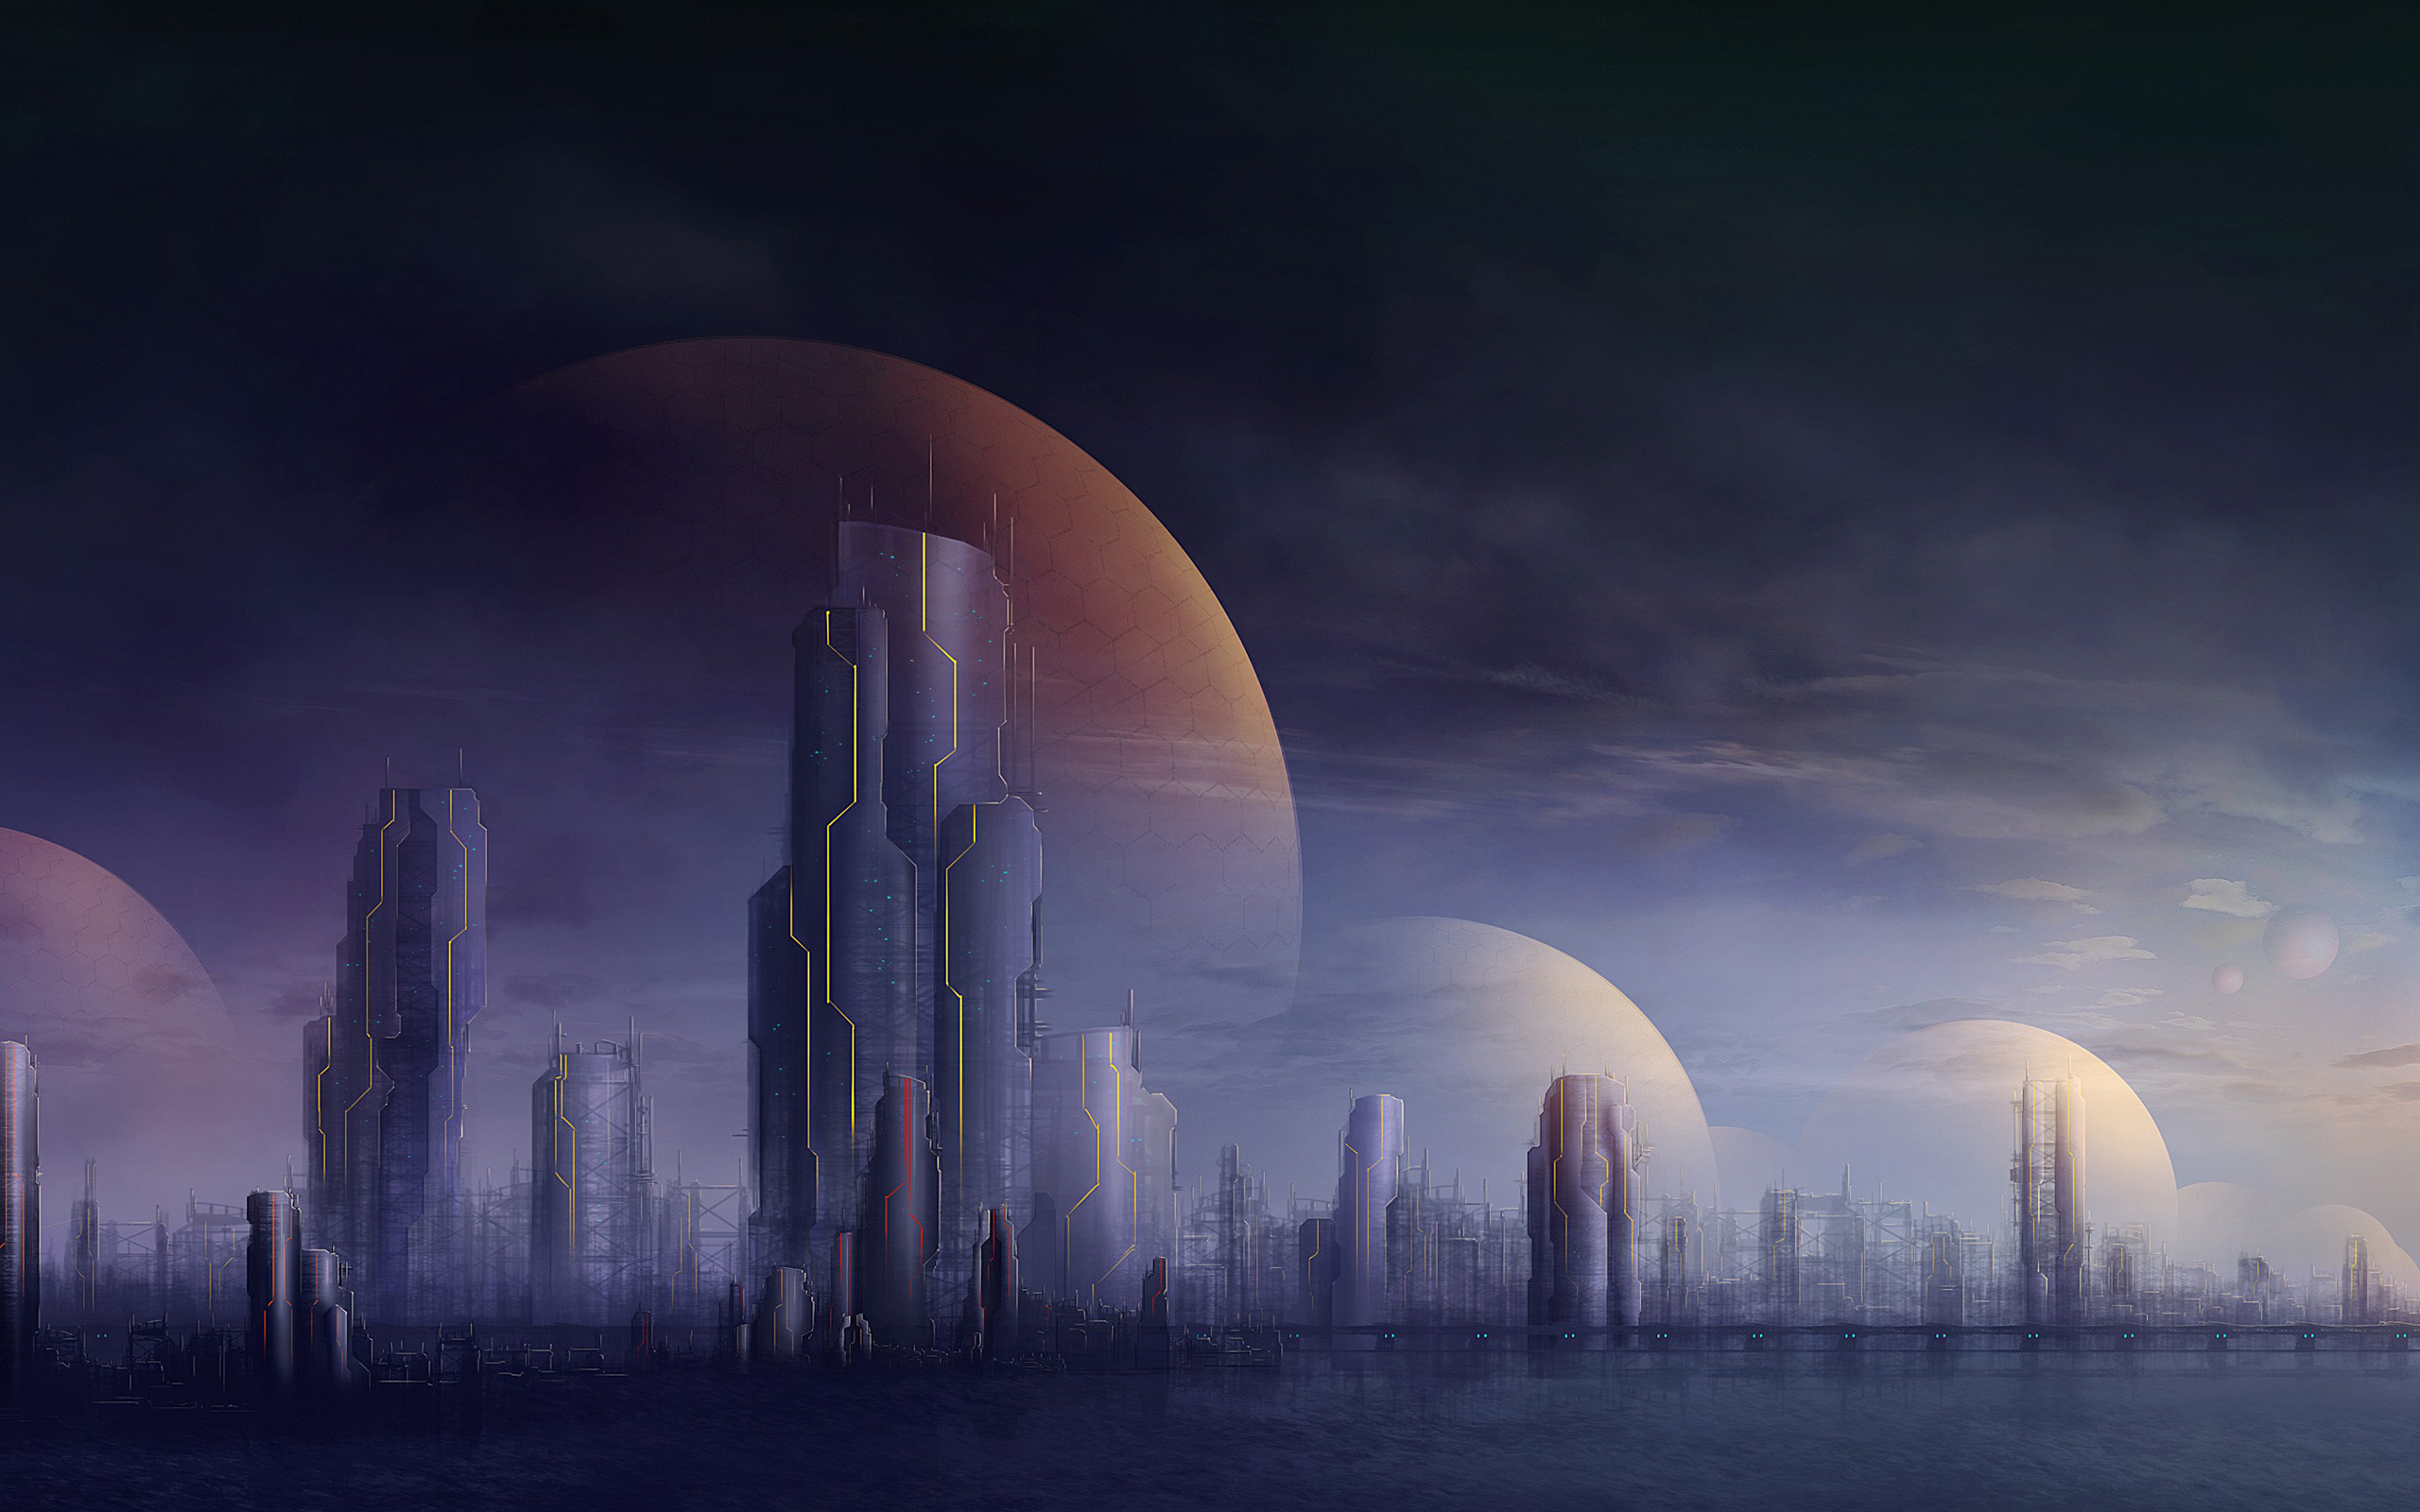 Cities Futuristic Buildings Skyscrapers Wallpaper